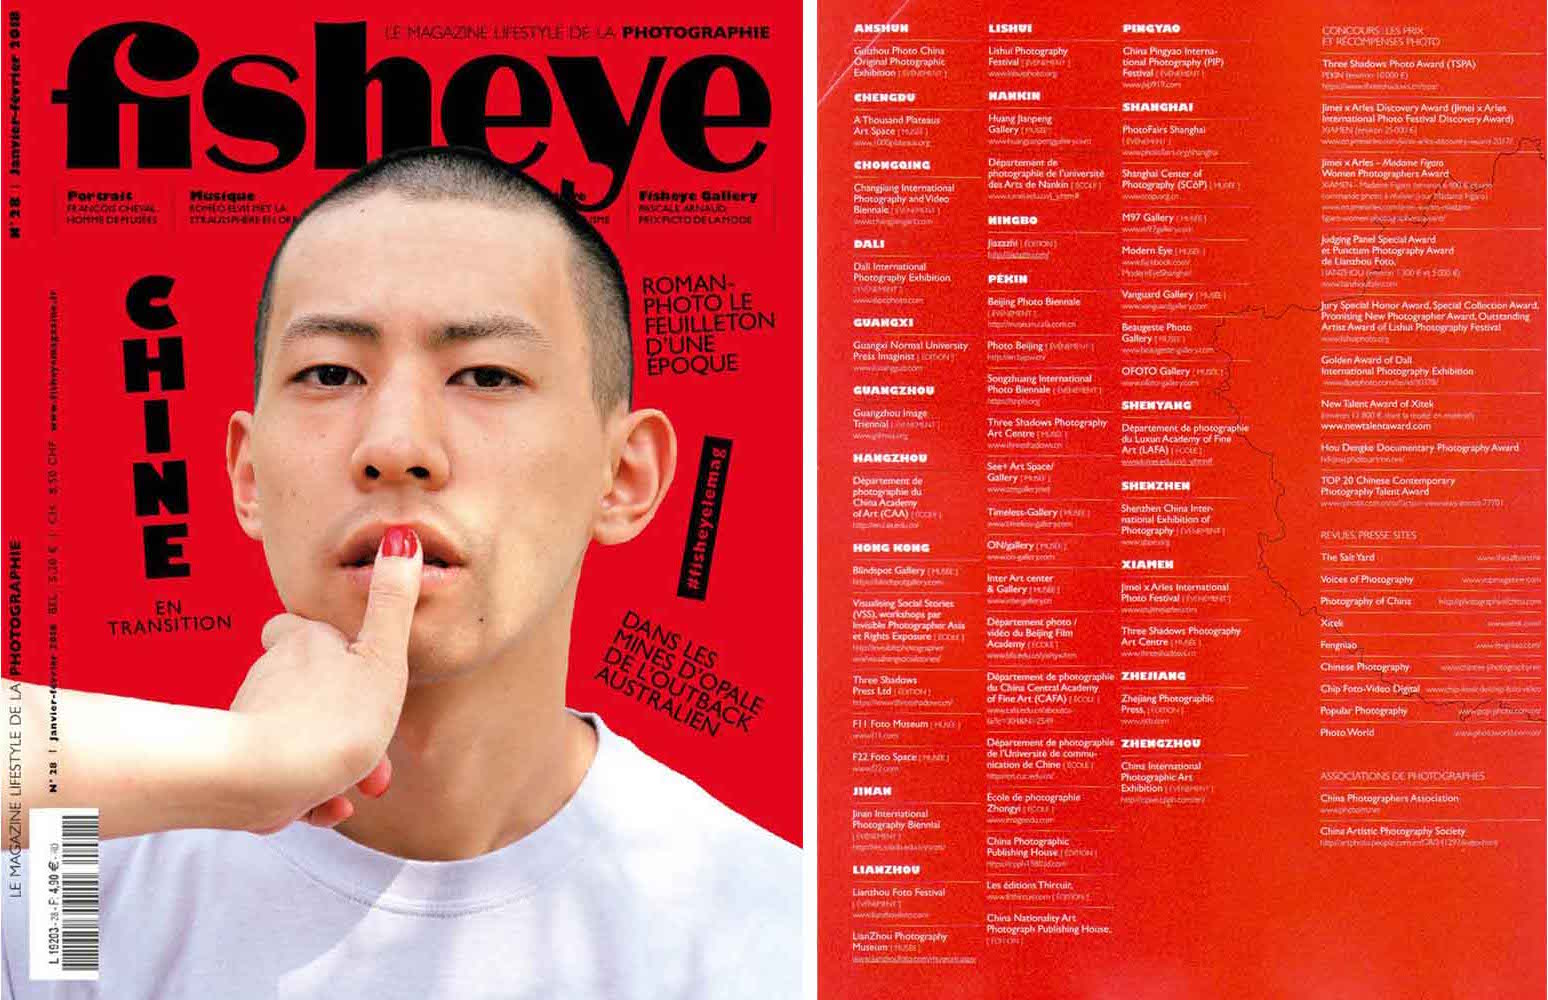 Fisheye n°28, latest issue dedicated to China, published in January 2018. Cover © Pixy Liao